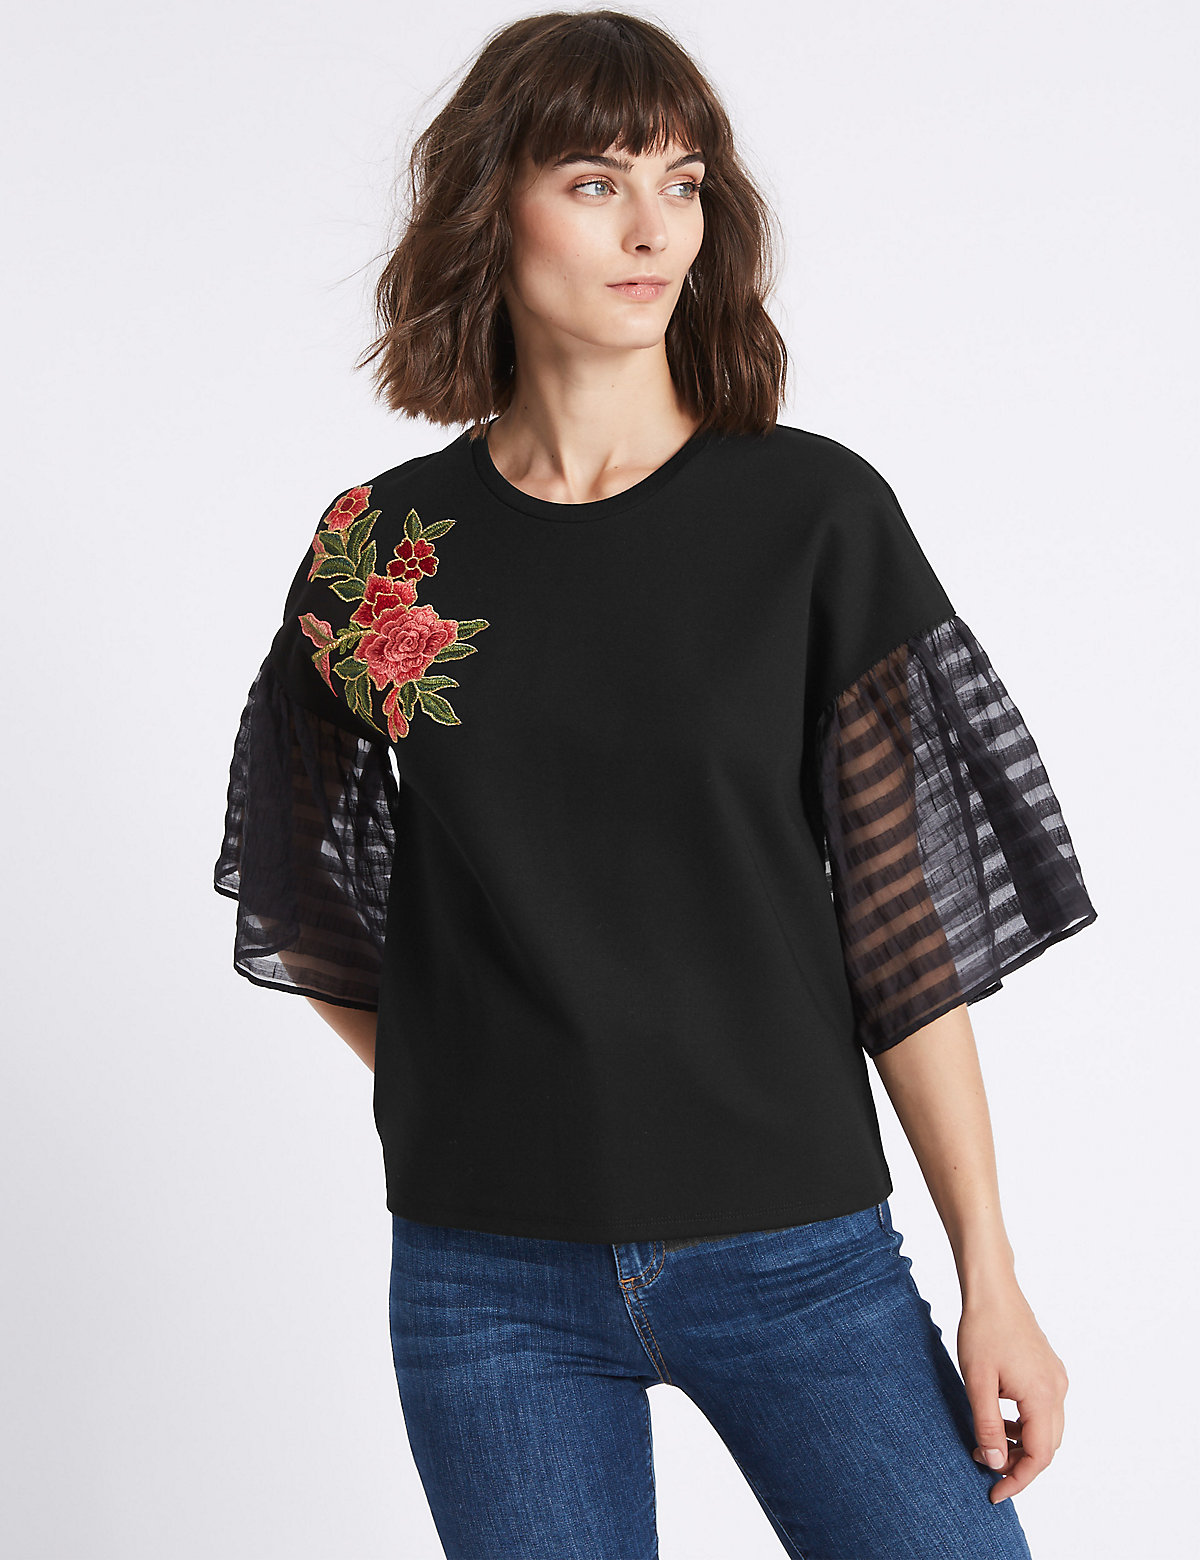 Limited Edition Embroidered Applique Half Sleeve T-Shirt